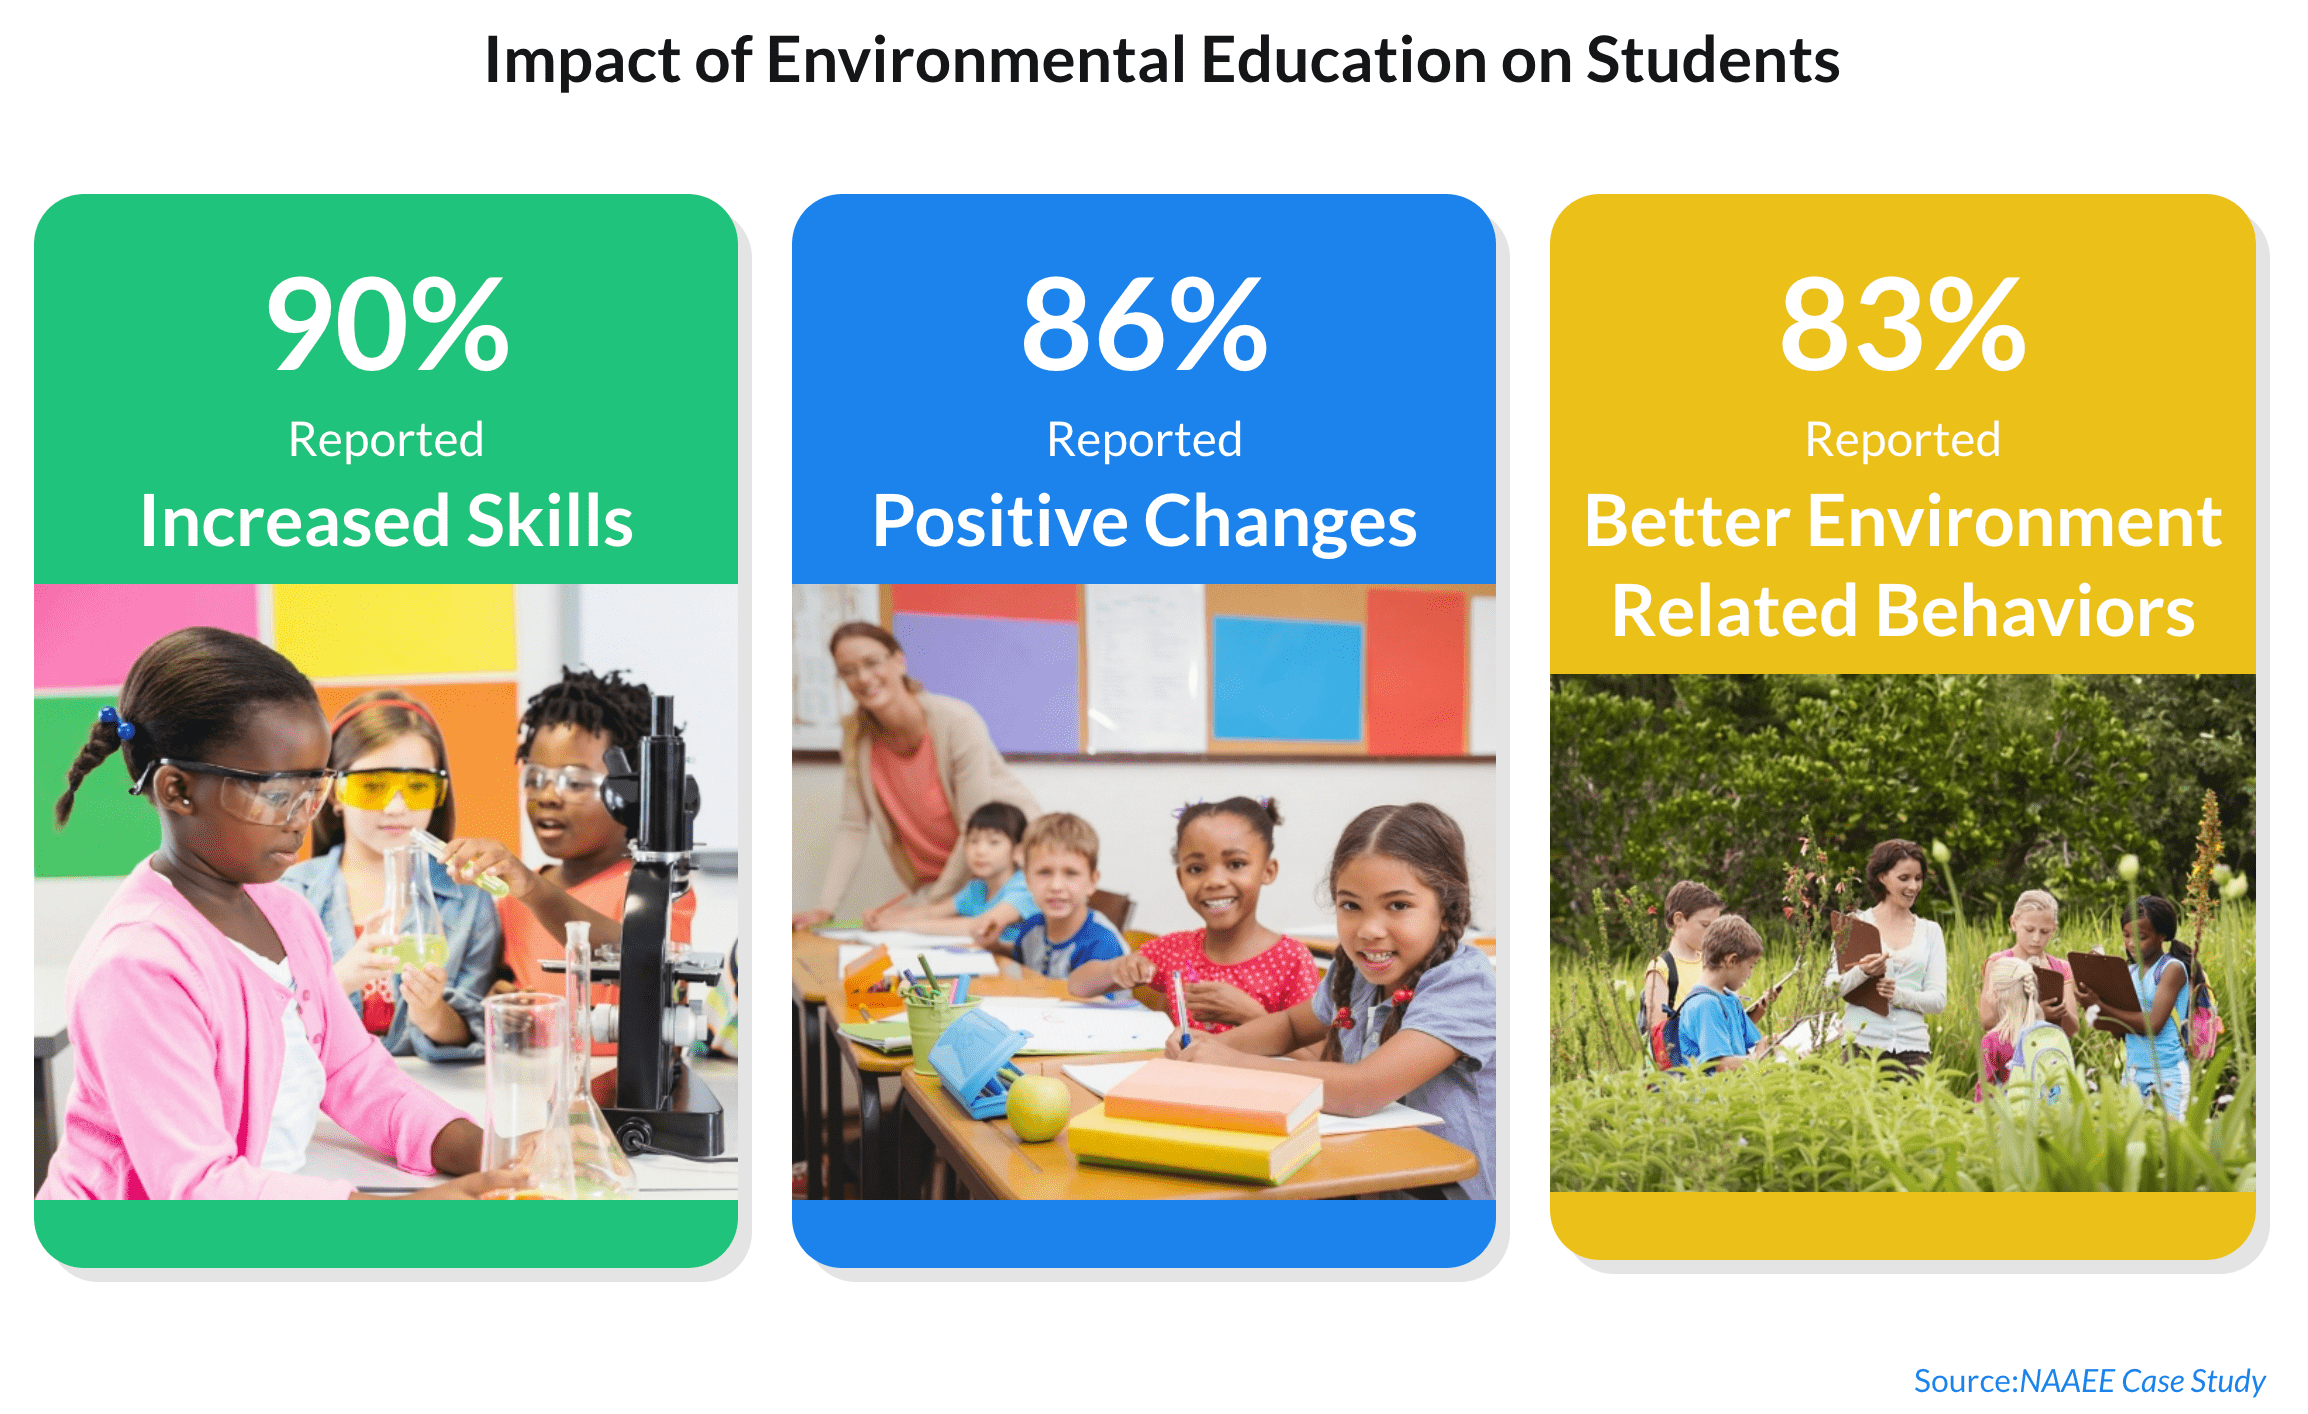 Impact of Environmental Education on Students